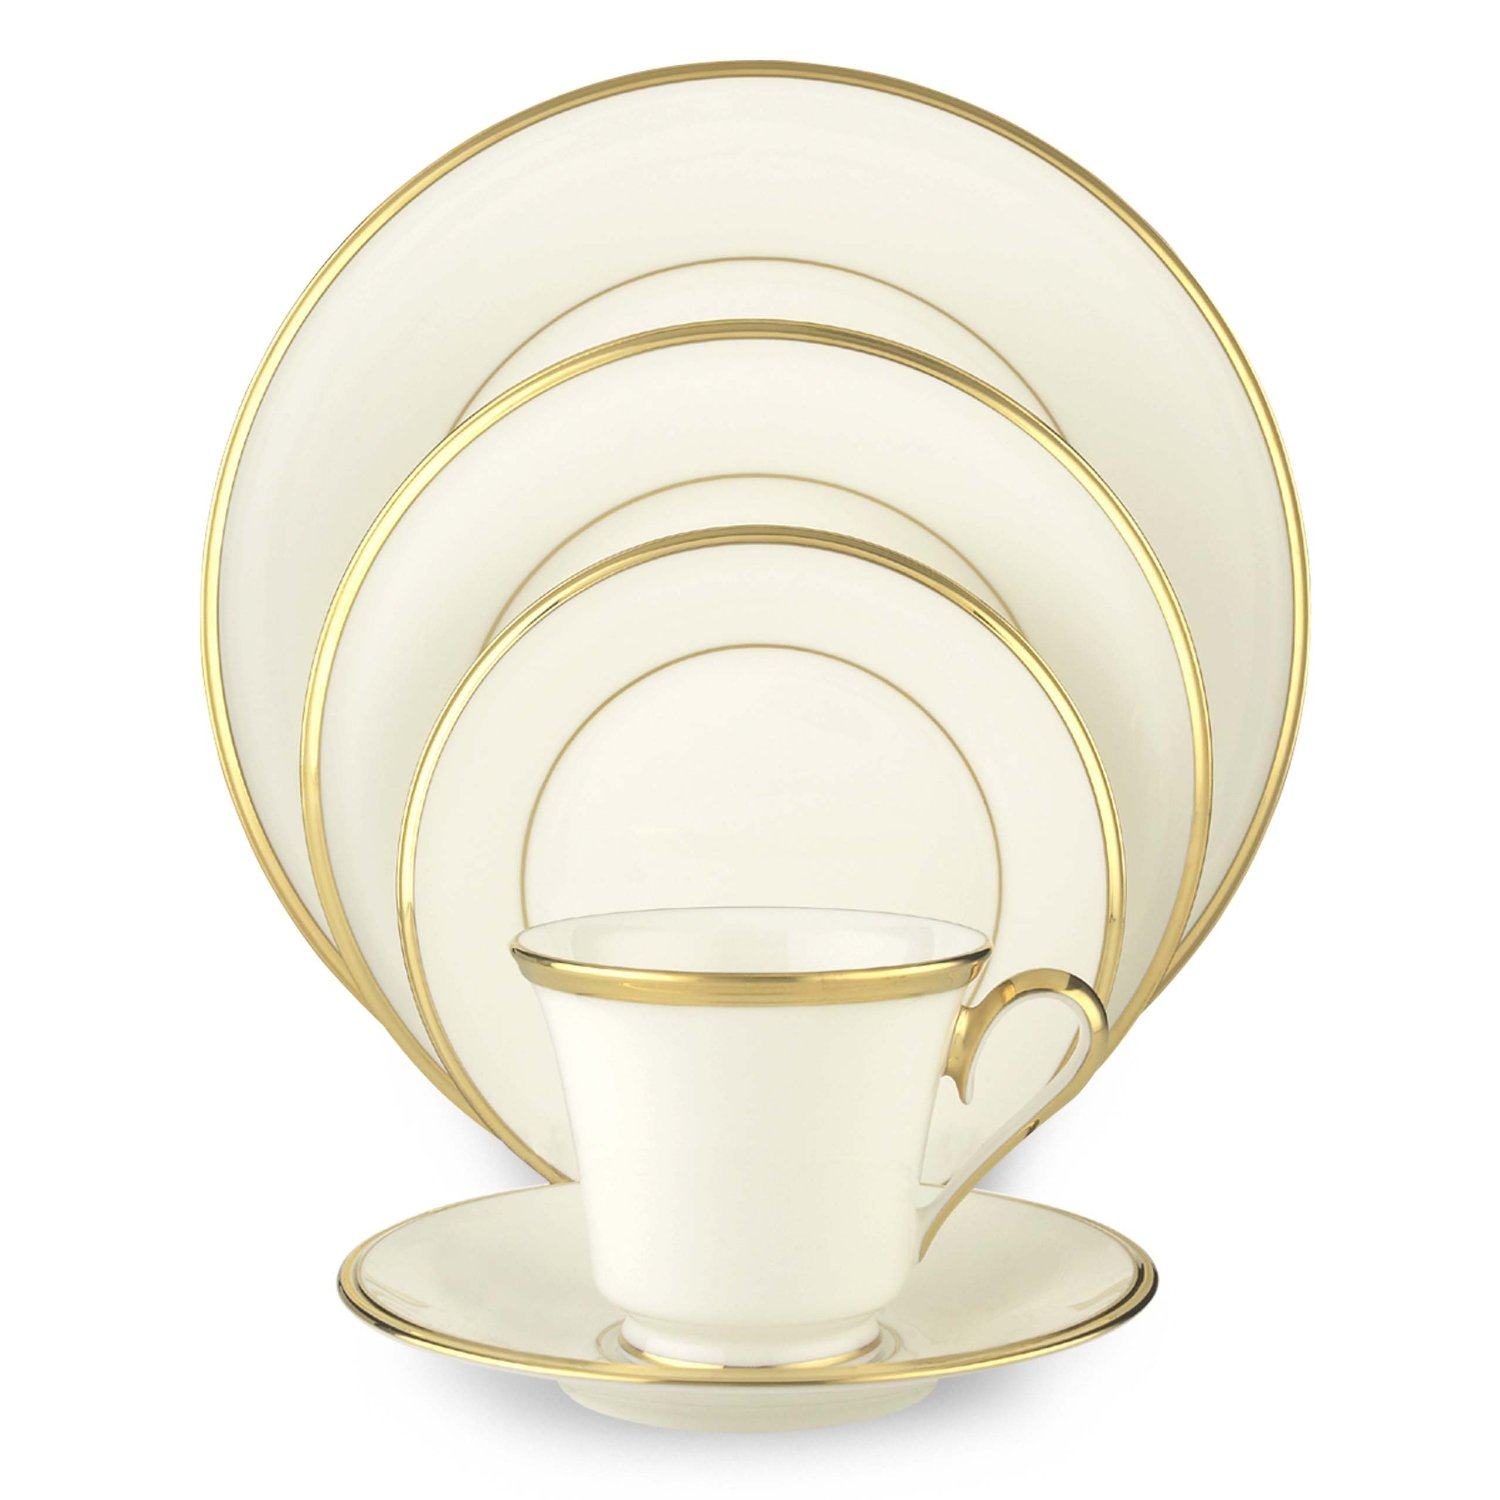 Lenox Eternal White Gold-Banded Bone China 5-Piece Place Setting, Service for 1 by Lenox